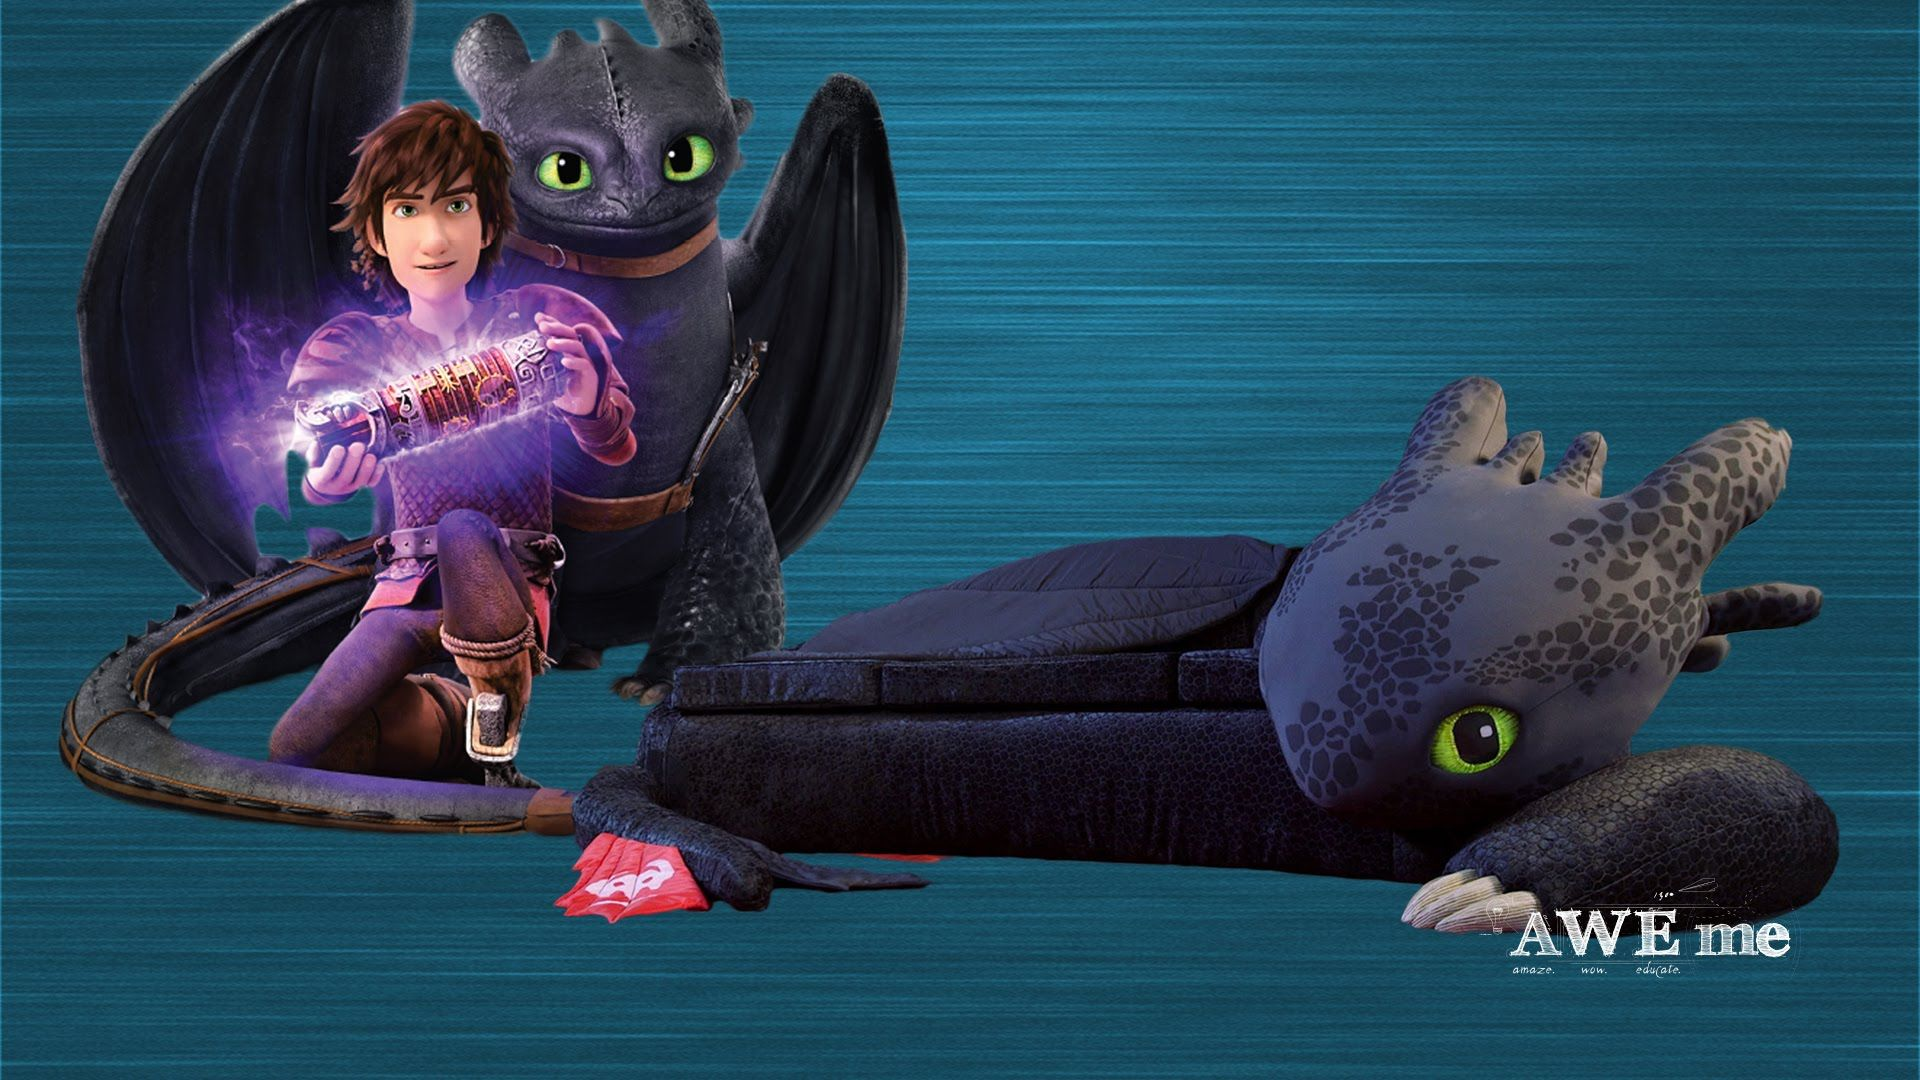 Find This Pin And More On How To Train Your Dragon!